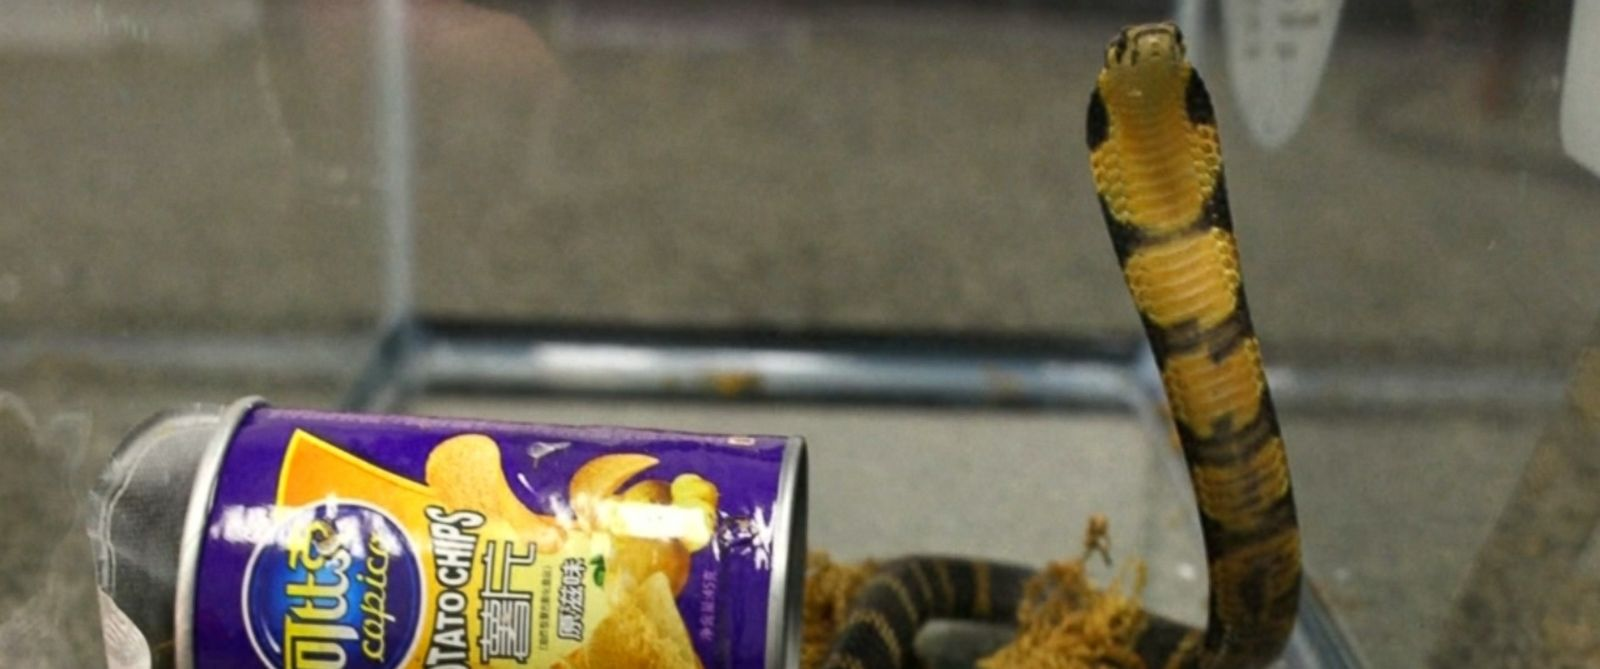 VIDEO: A California man has been arrested on a federal smuggling charge stemming from the seizure of a package that contained three live king cobras hidden inside potato chips canisters, according to the U.S. Department of Justice.